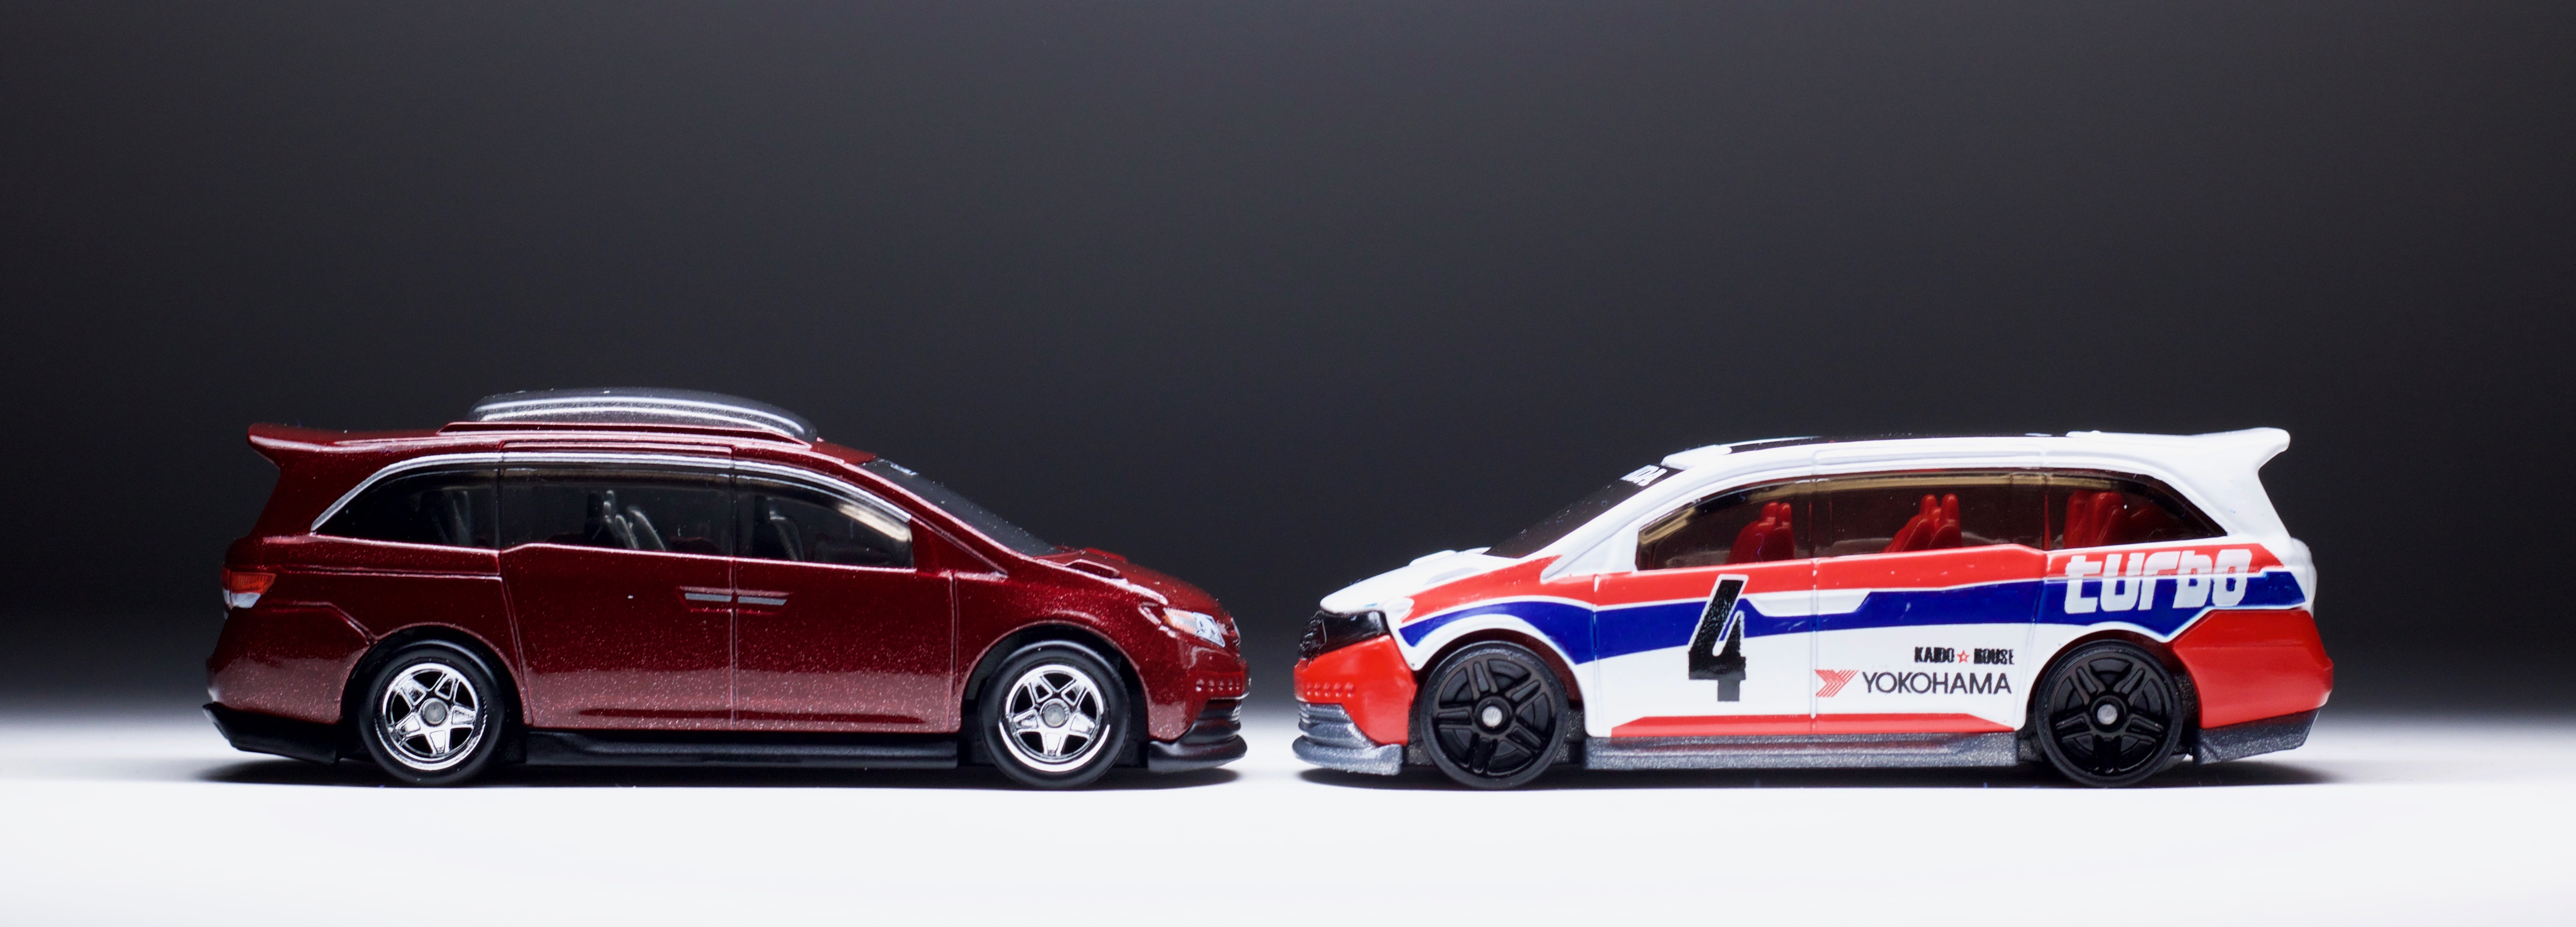 The Hot Wheels Honda Odyssey goes more stock for Car Culture Cargo